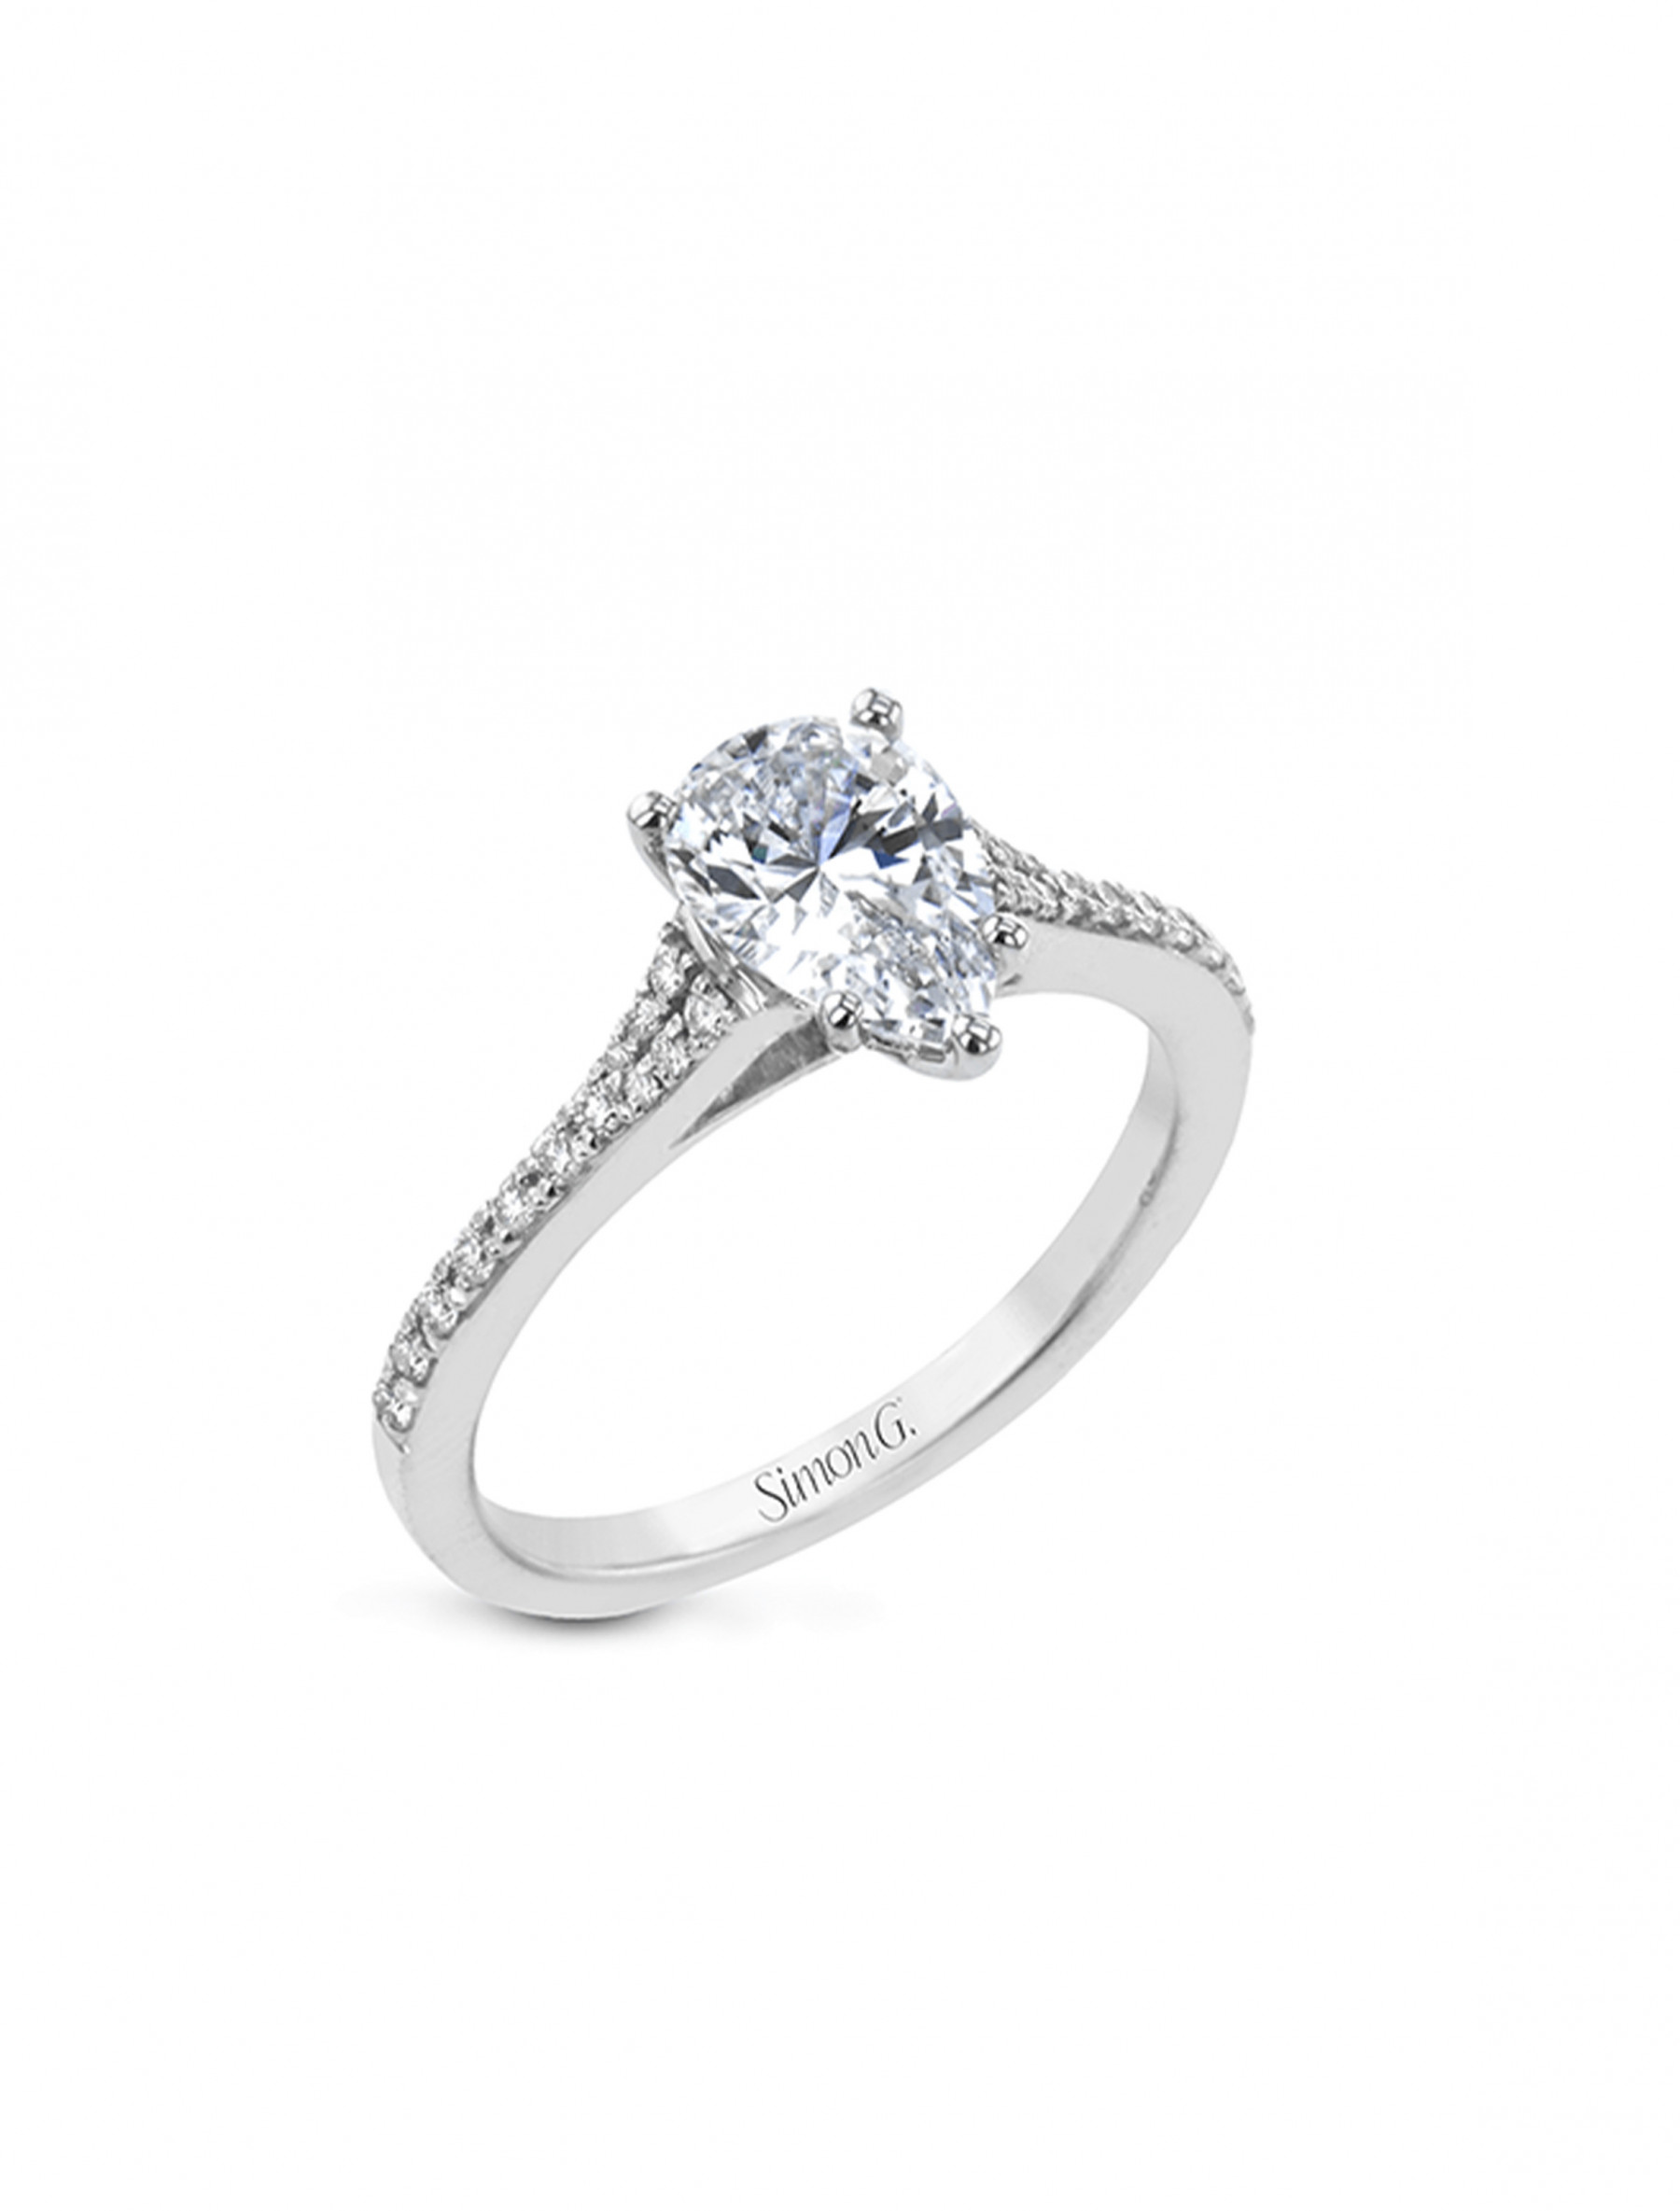 Simon G Pear Pave Diamond Engagement Ring Setting in 18K Gold